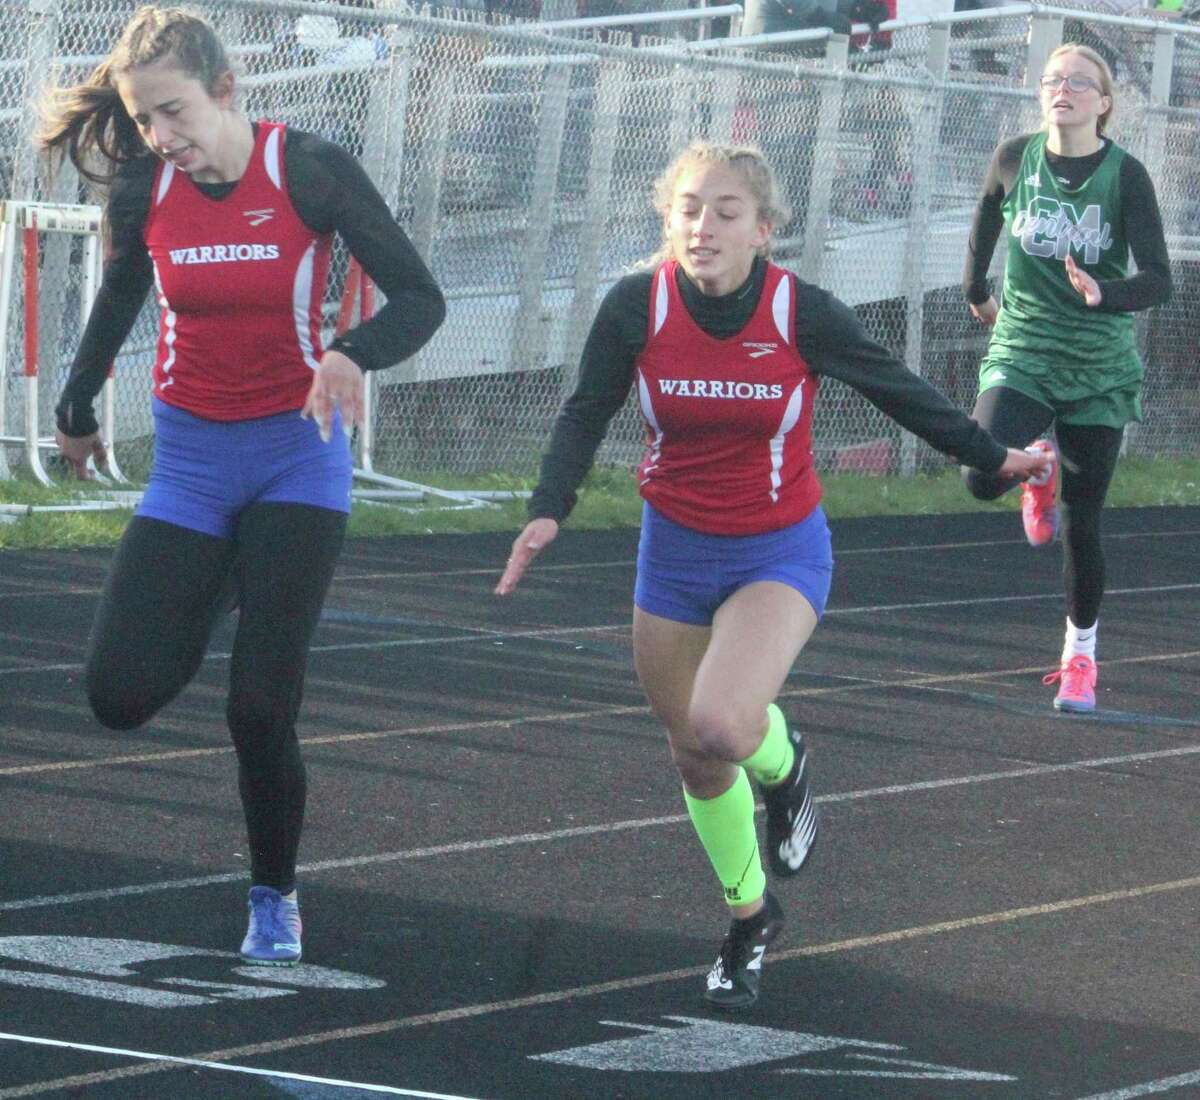 Emily Fredrick (left) and Arianna Todd of Chippewa Hills take second and first place respectively in the CSAA Gold meet 200-meter dash. (Pioneer photo/John Raffel)